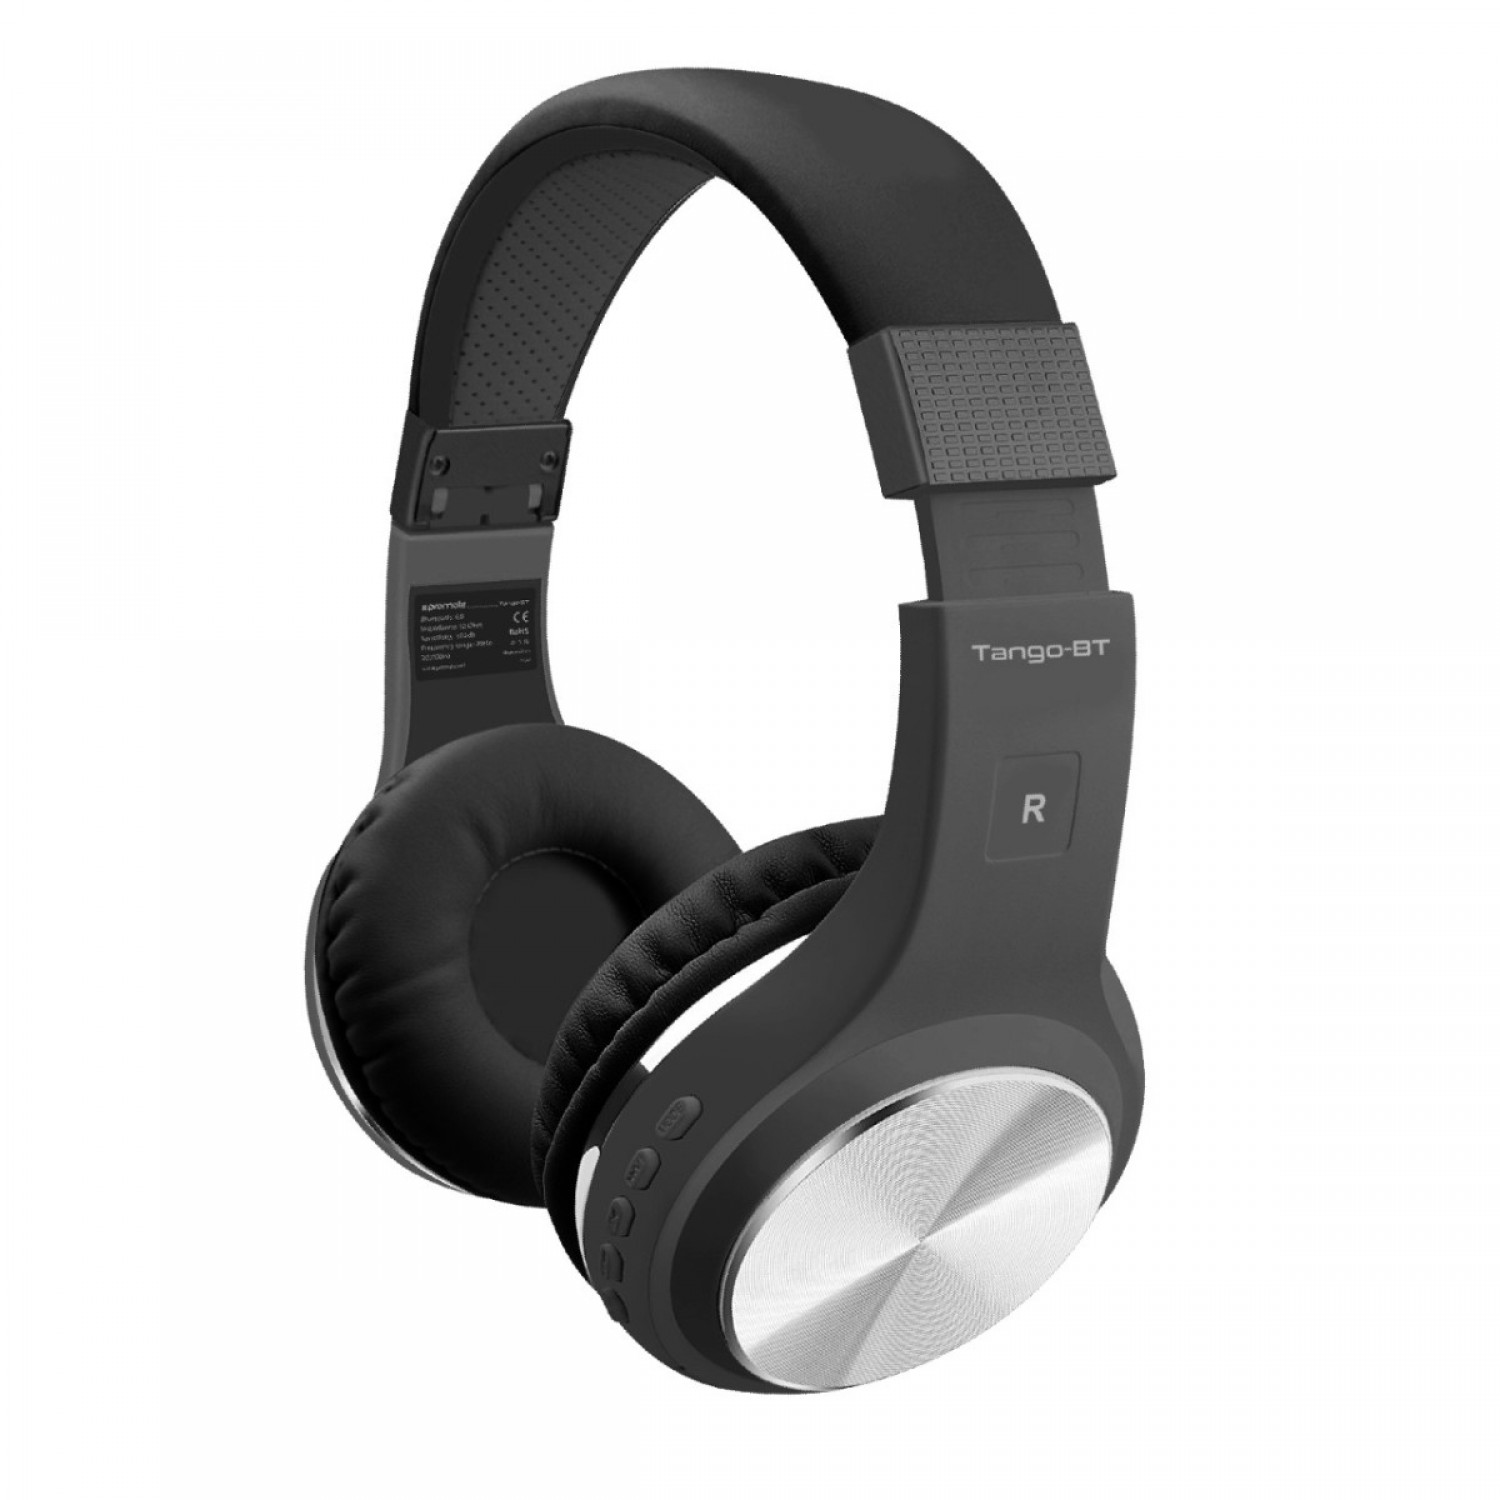 Promate Wireless Headphones, Foldable Bluetooth Stereo Adjustable Headset with Built-In TF Card slot, Microphones, Noise Cancelling and Wired Mode for All Bluetooth and Aux Enabled Devices, Tango-BT Black